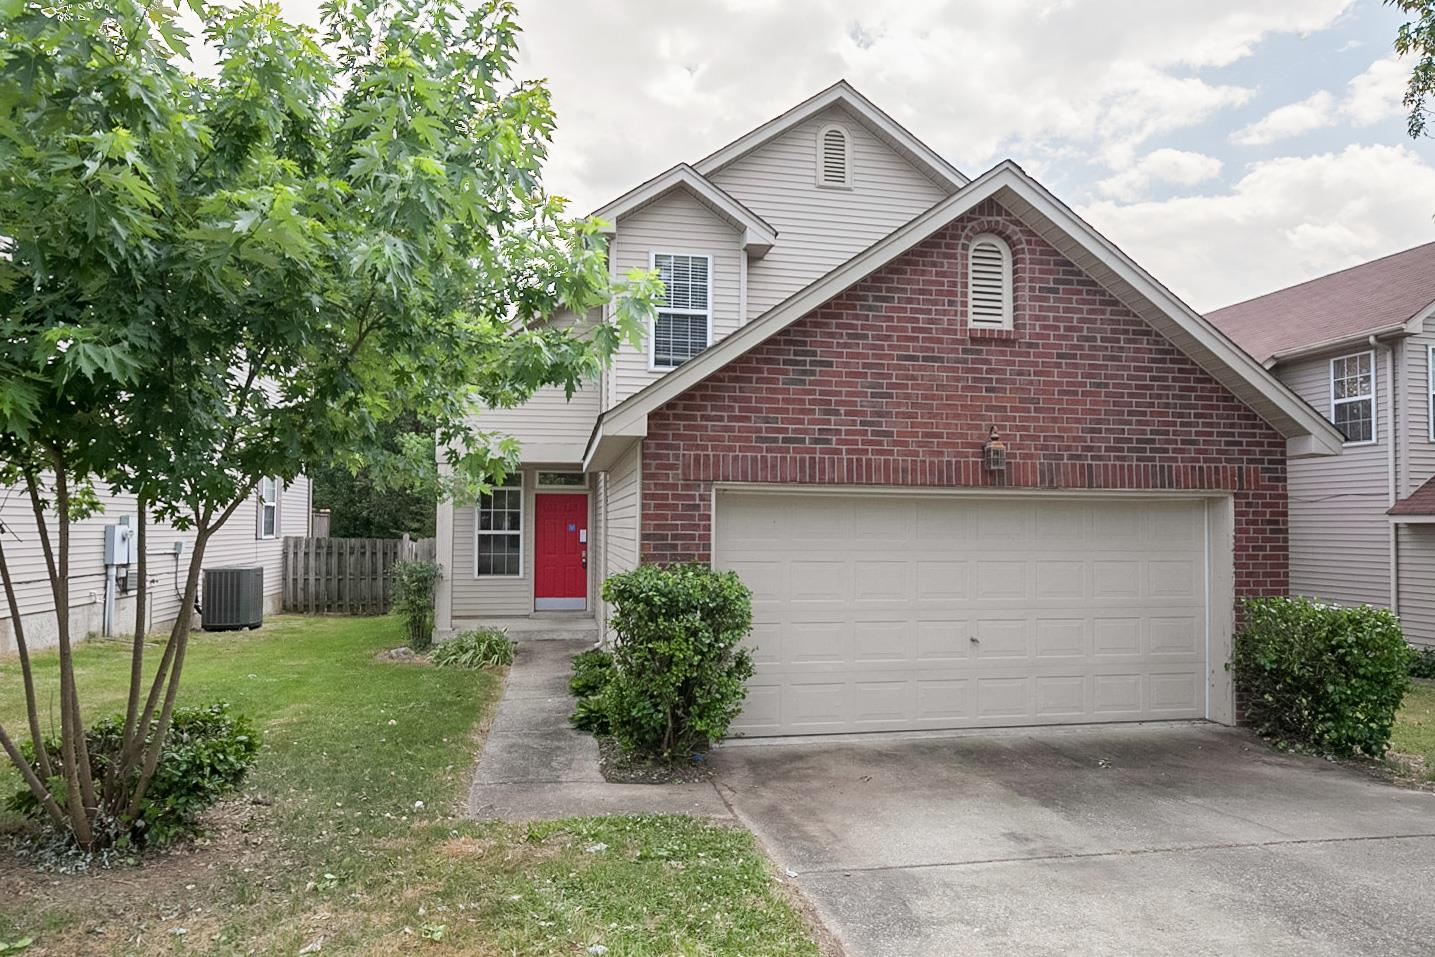 5947 Colchester Dr, Hermitage, TN 37076 - Hermitage, TN real estate listing